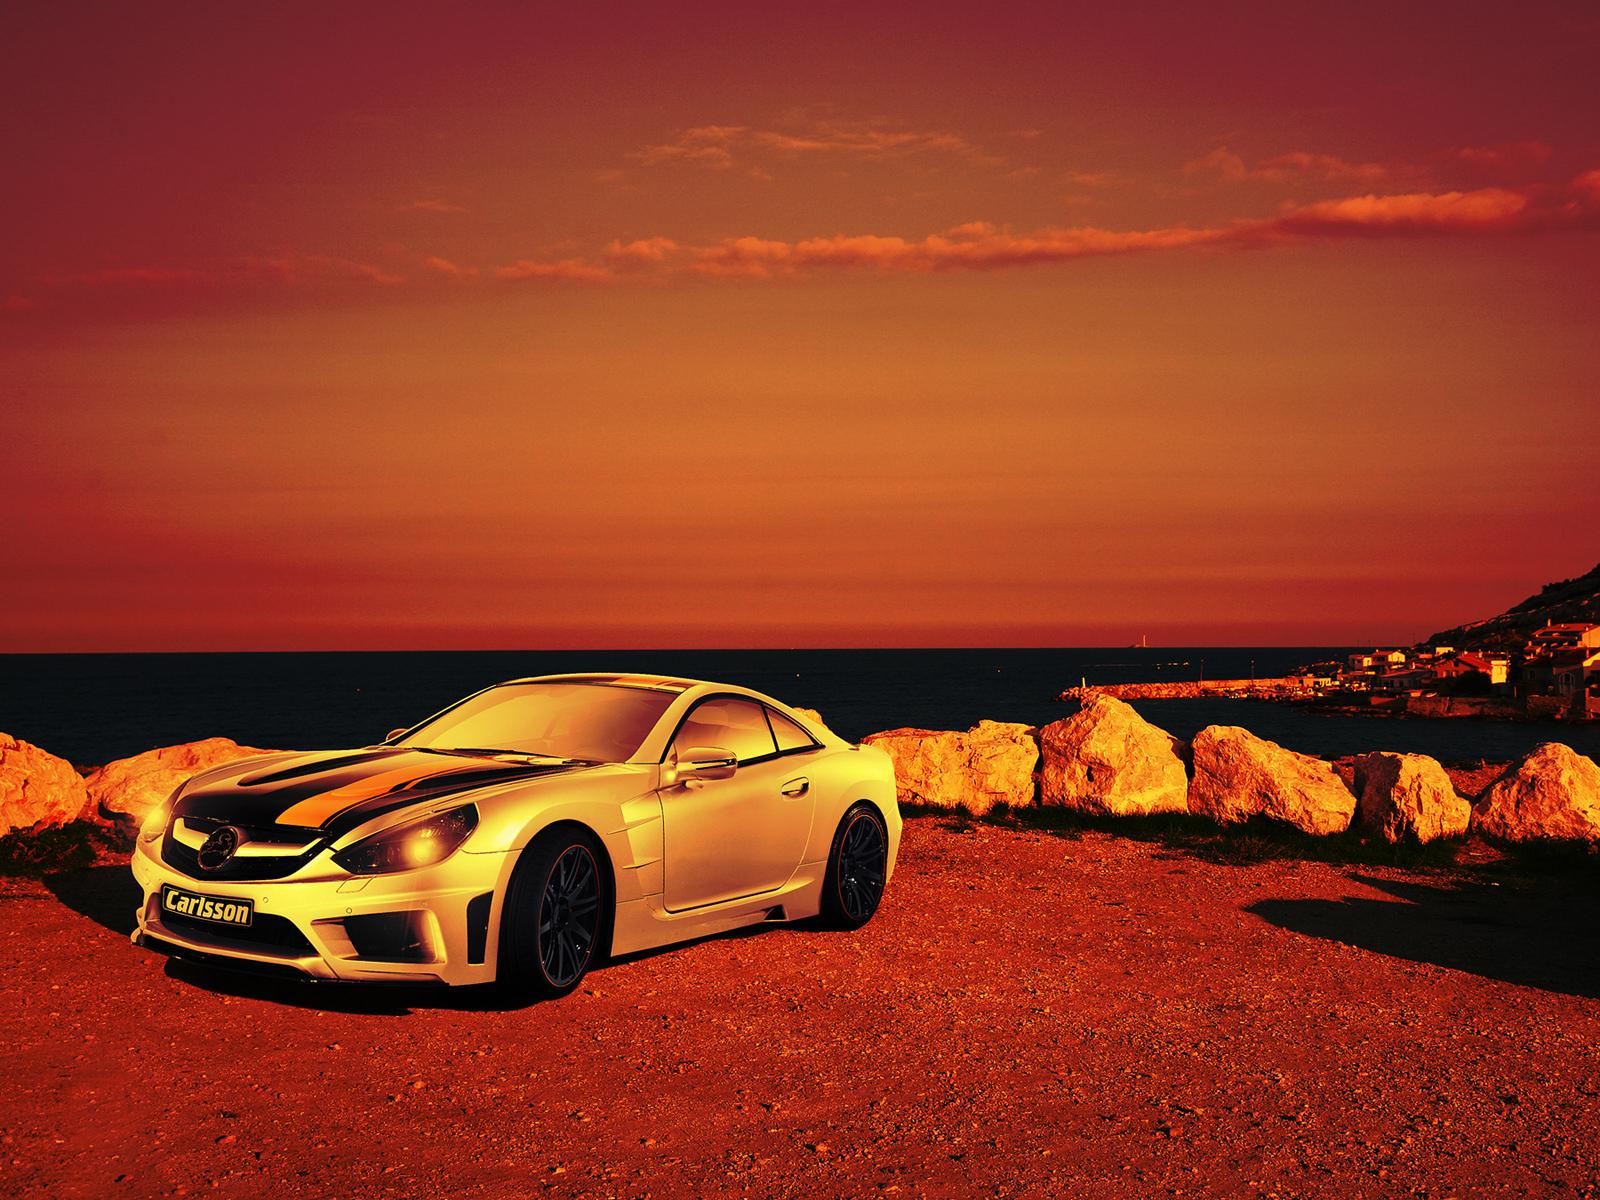 Carlsson C25 Exotic wallpapers | Carlsson C25 Exotic stock ...